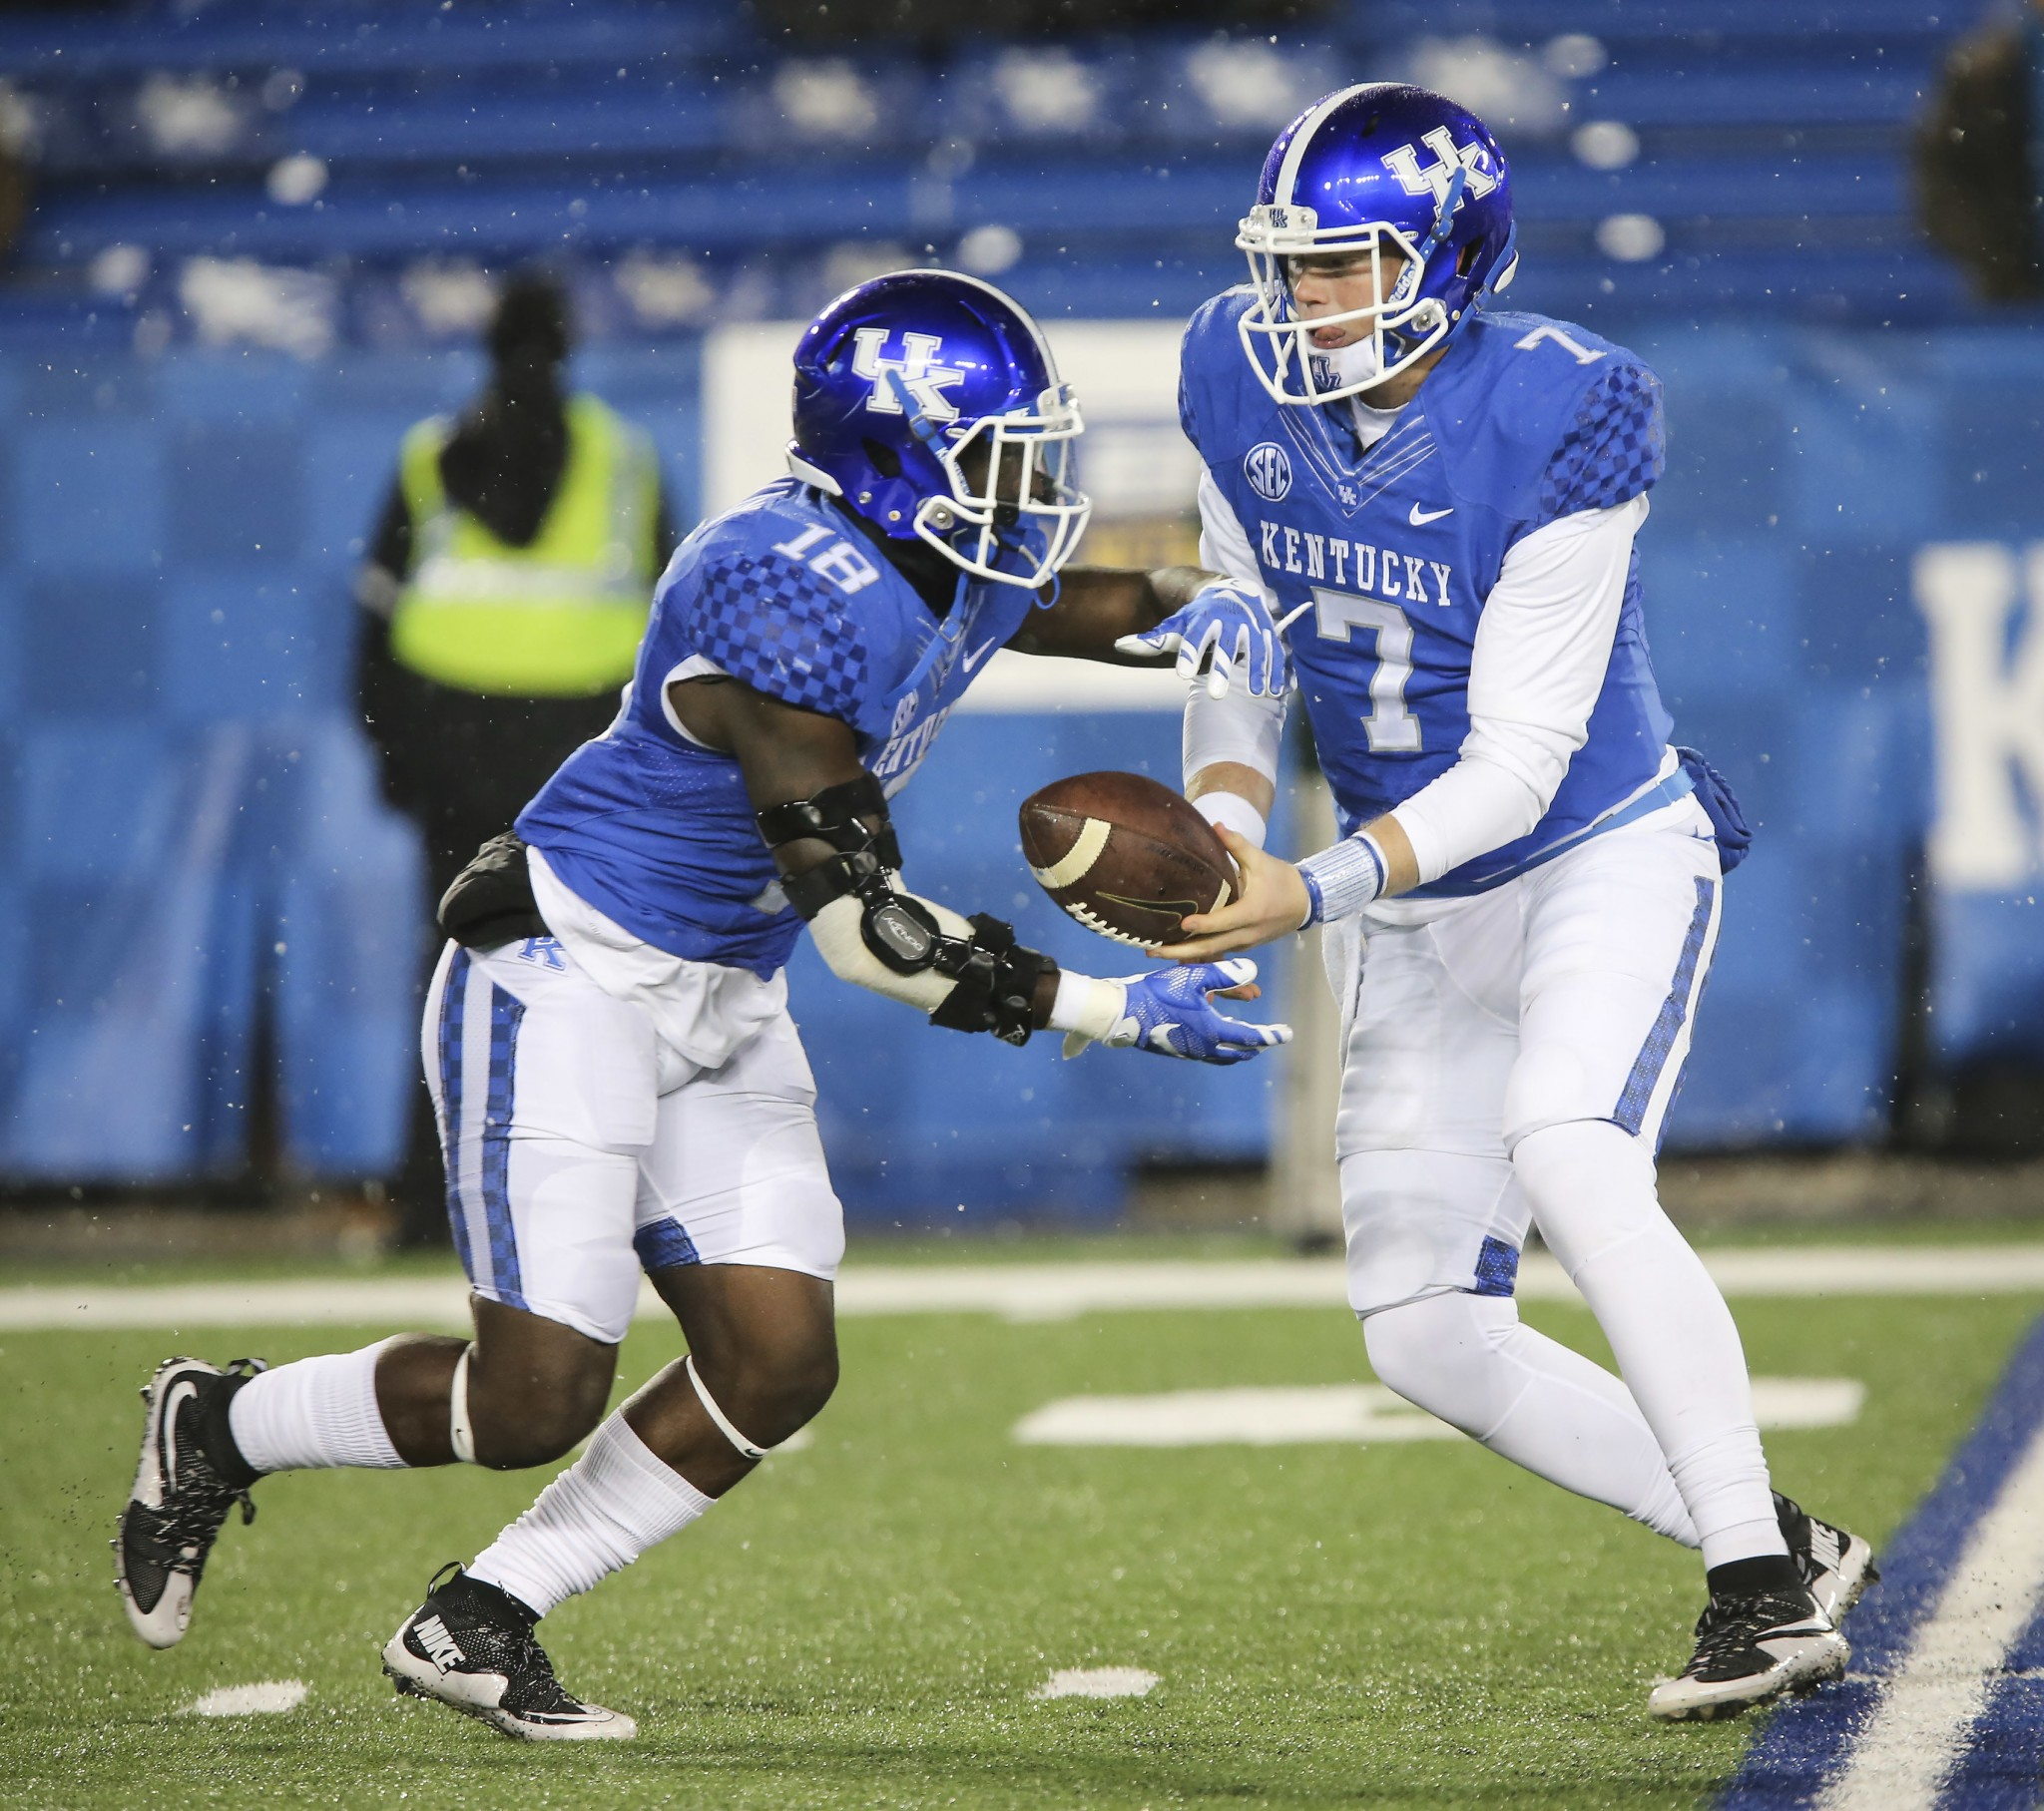 In this Nov. 21, 2015, file photo, Kentucky quarterback Drew Barker hands off the ball to running back Stanley Williams during the second half of an NCAA college football game against Charlotte in Lexington, Ky. (AP Photo/David Stephenson, File)